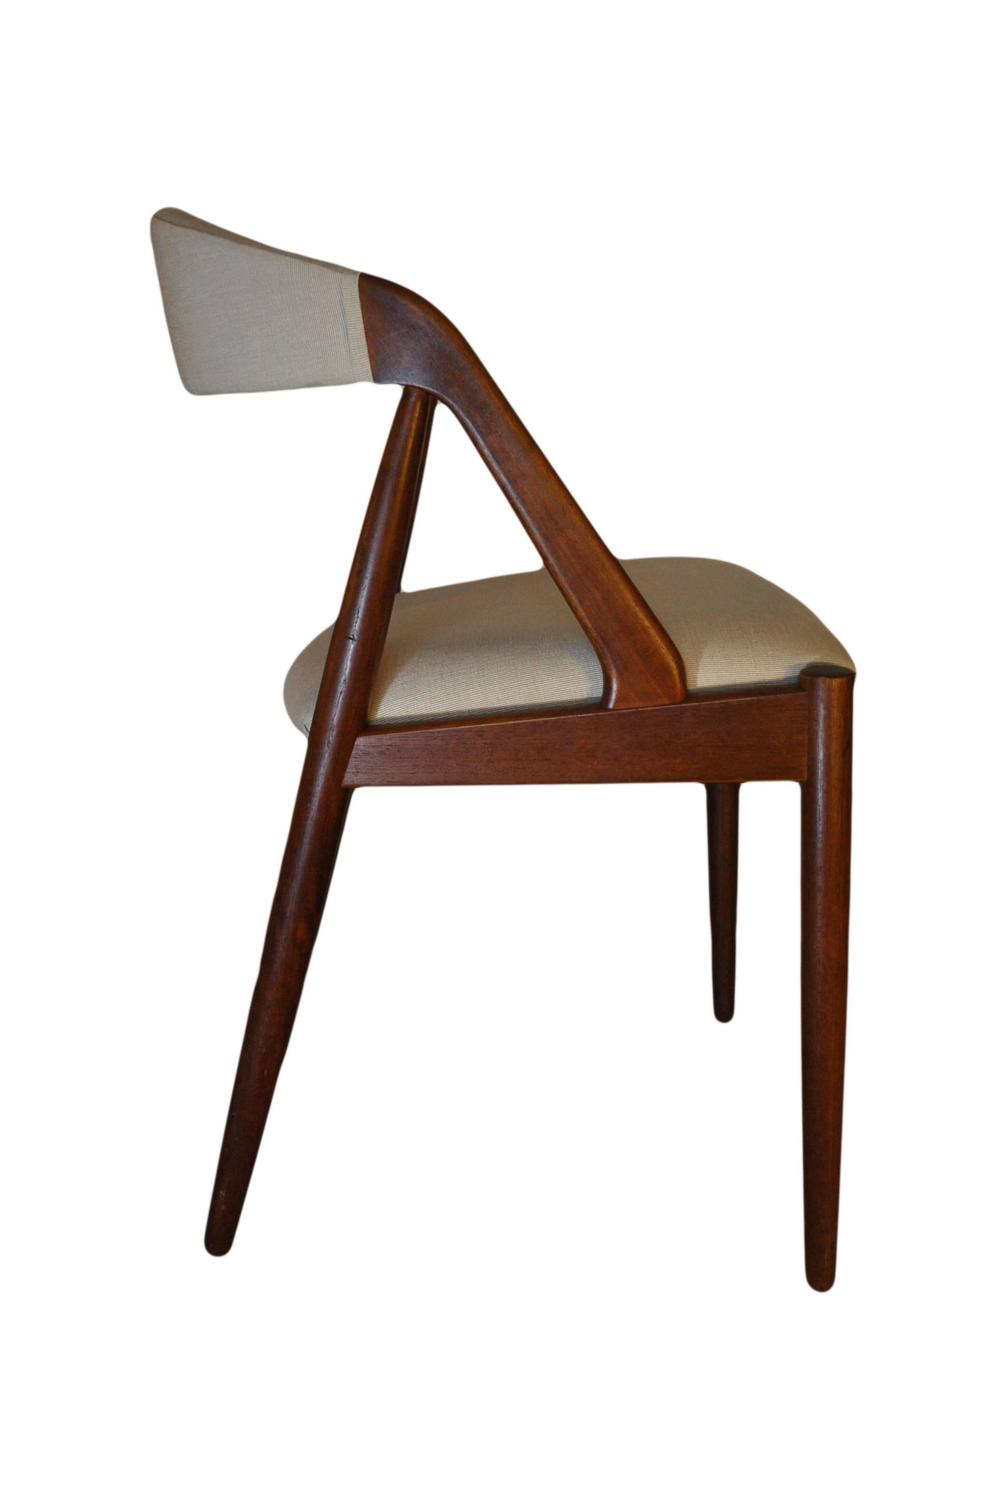 Kai kristiansen dining chairs set of four re upholstered teak at 1stdibs - Kai kristiansen chairs ...